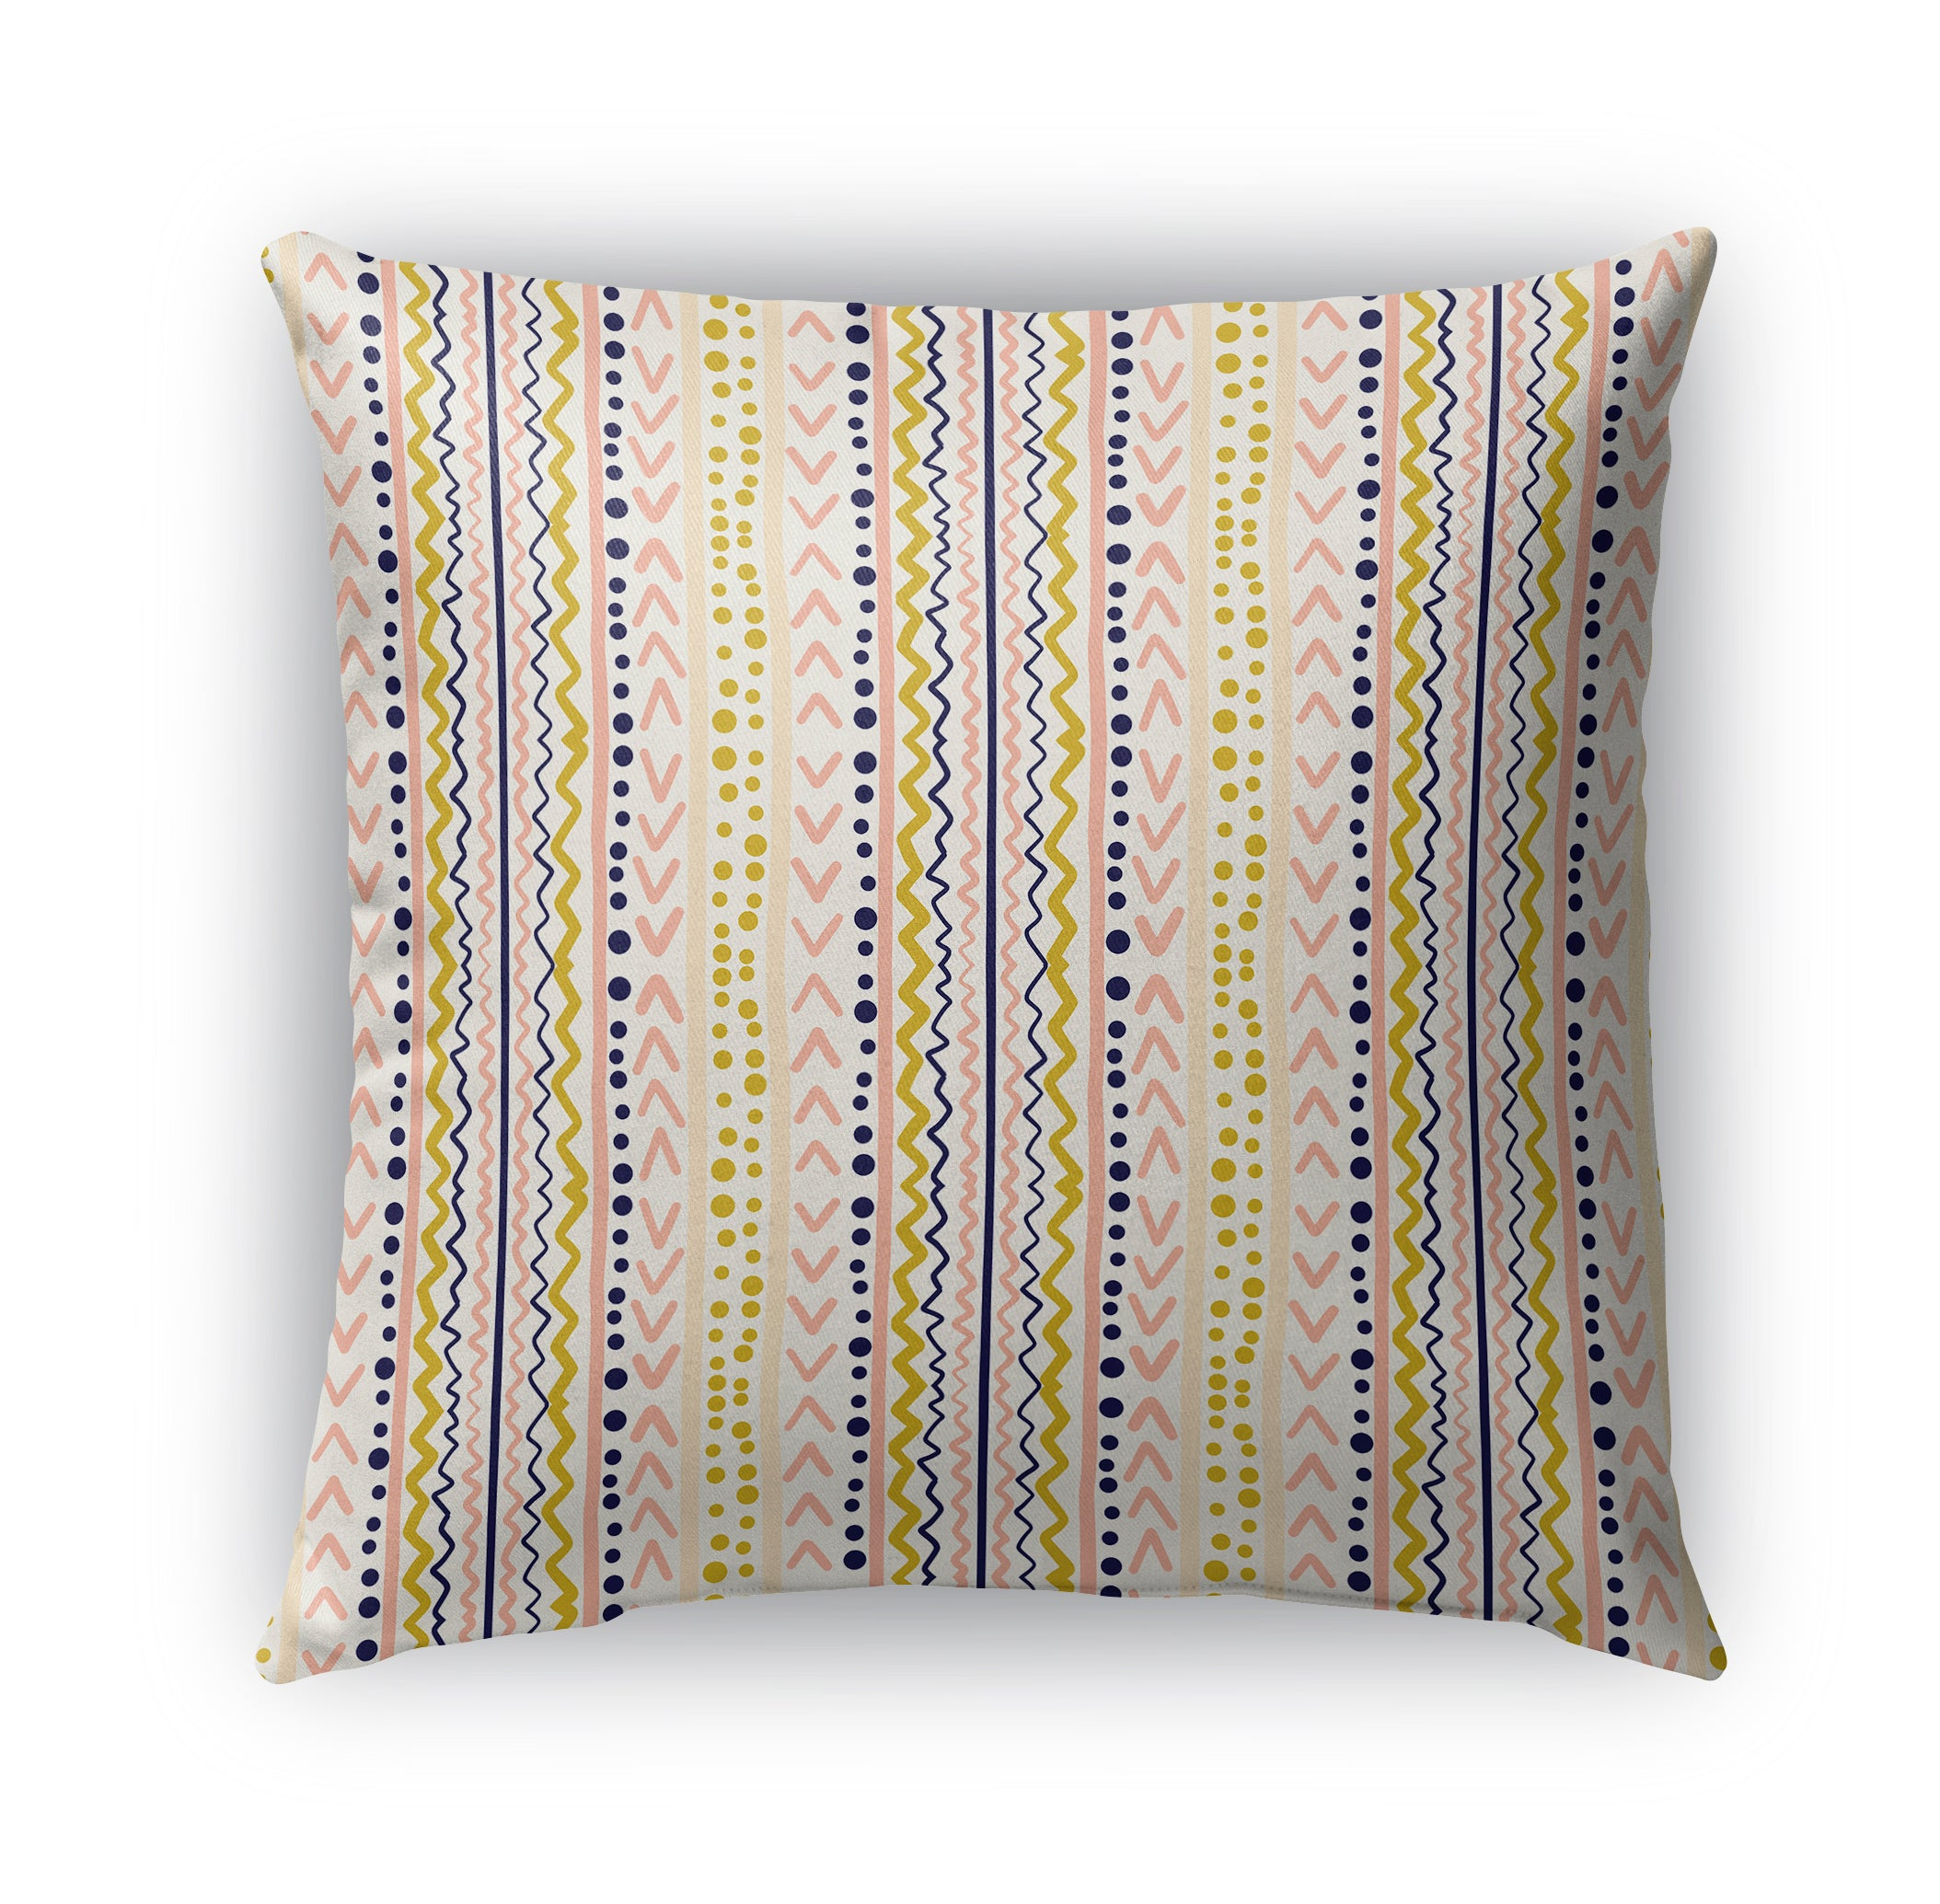 FLORENCE Indoor|Outdoor Pillow By Michelle Parascandolo